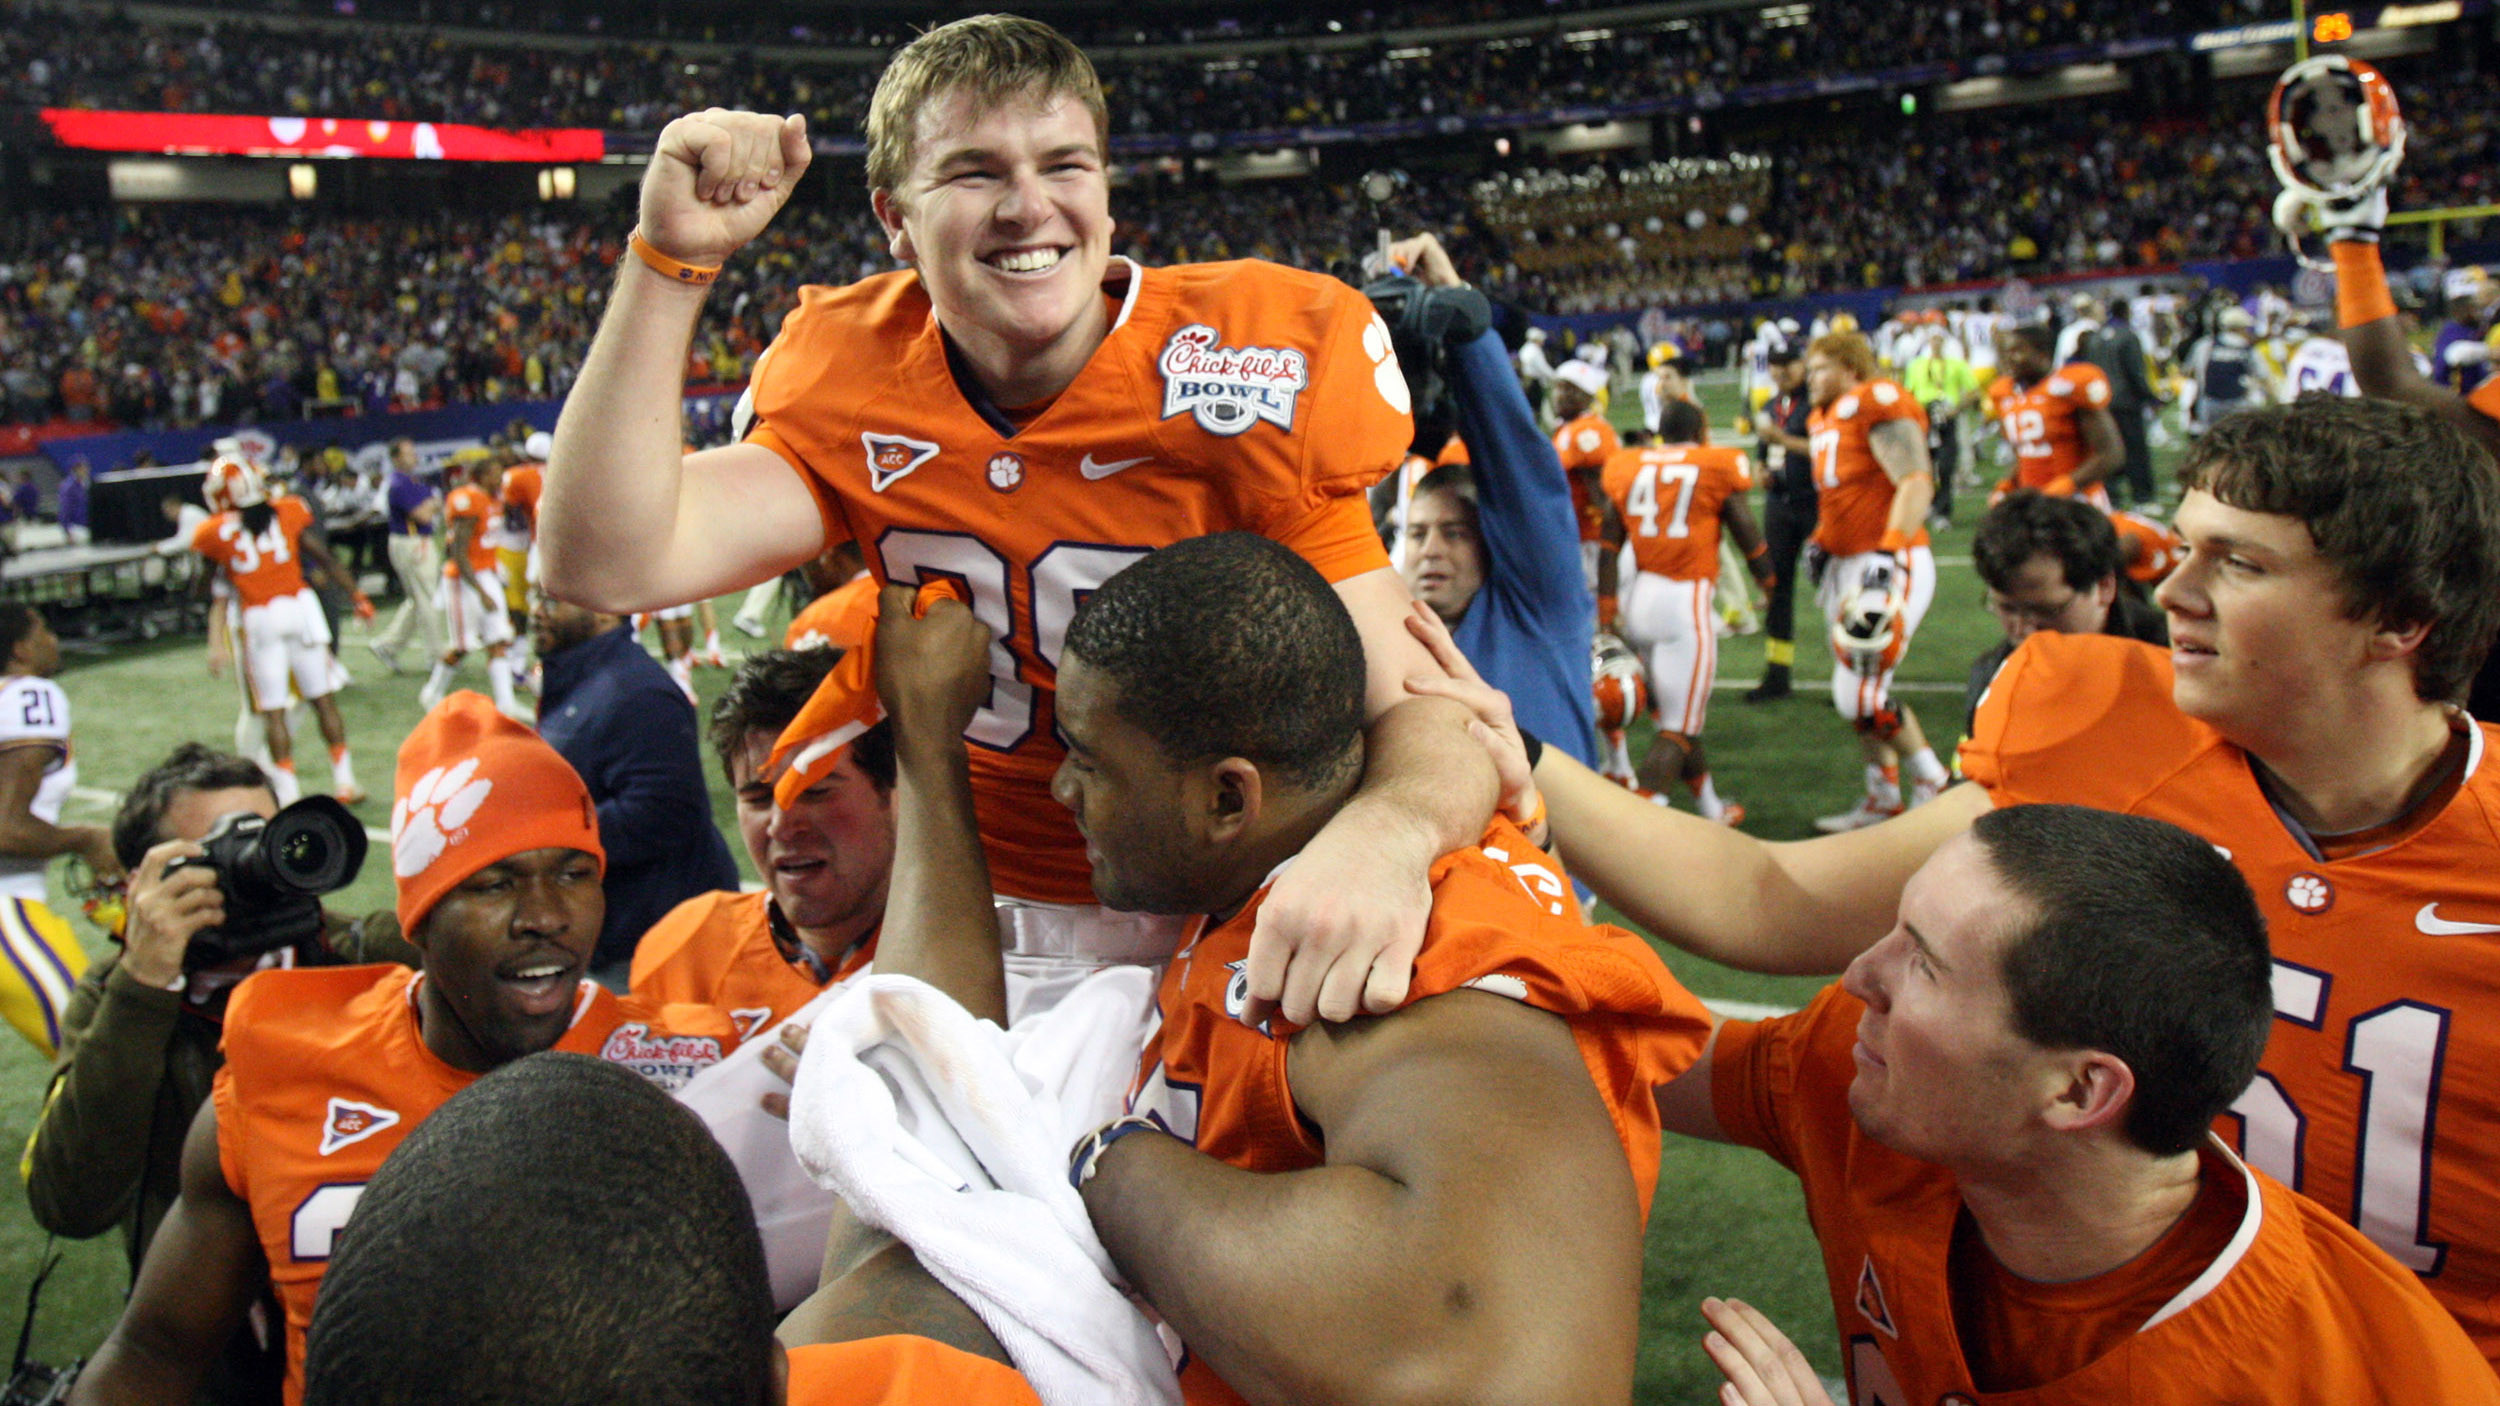 Clemson vs. LSU Chick-fil-A Bowl Game Replay Now Available on ClemsonTigers.com